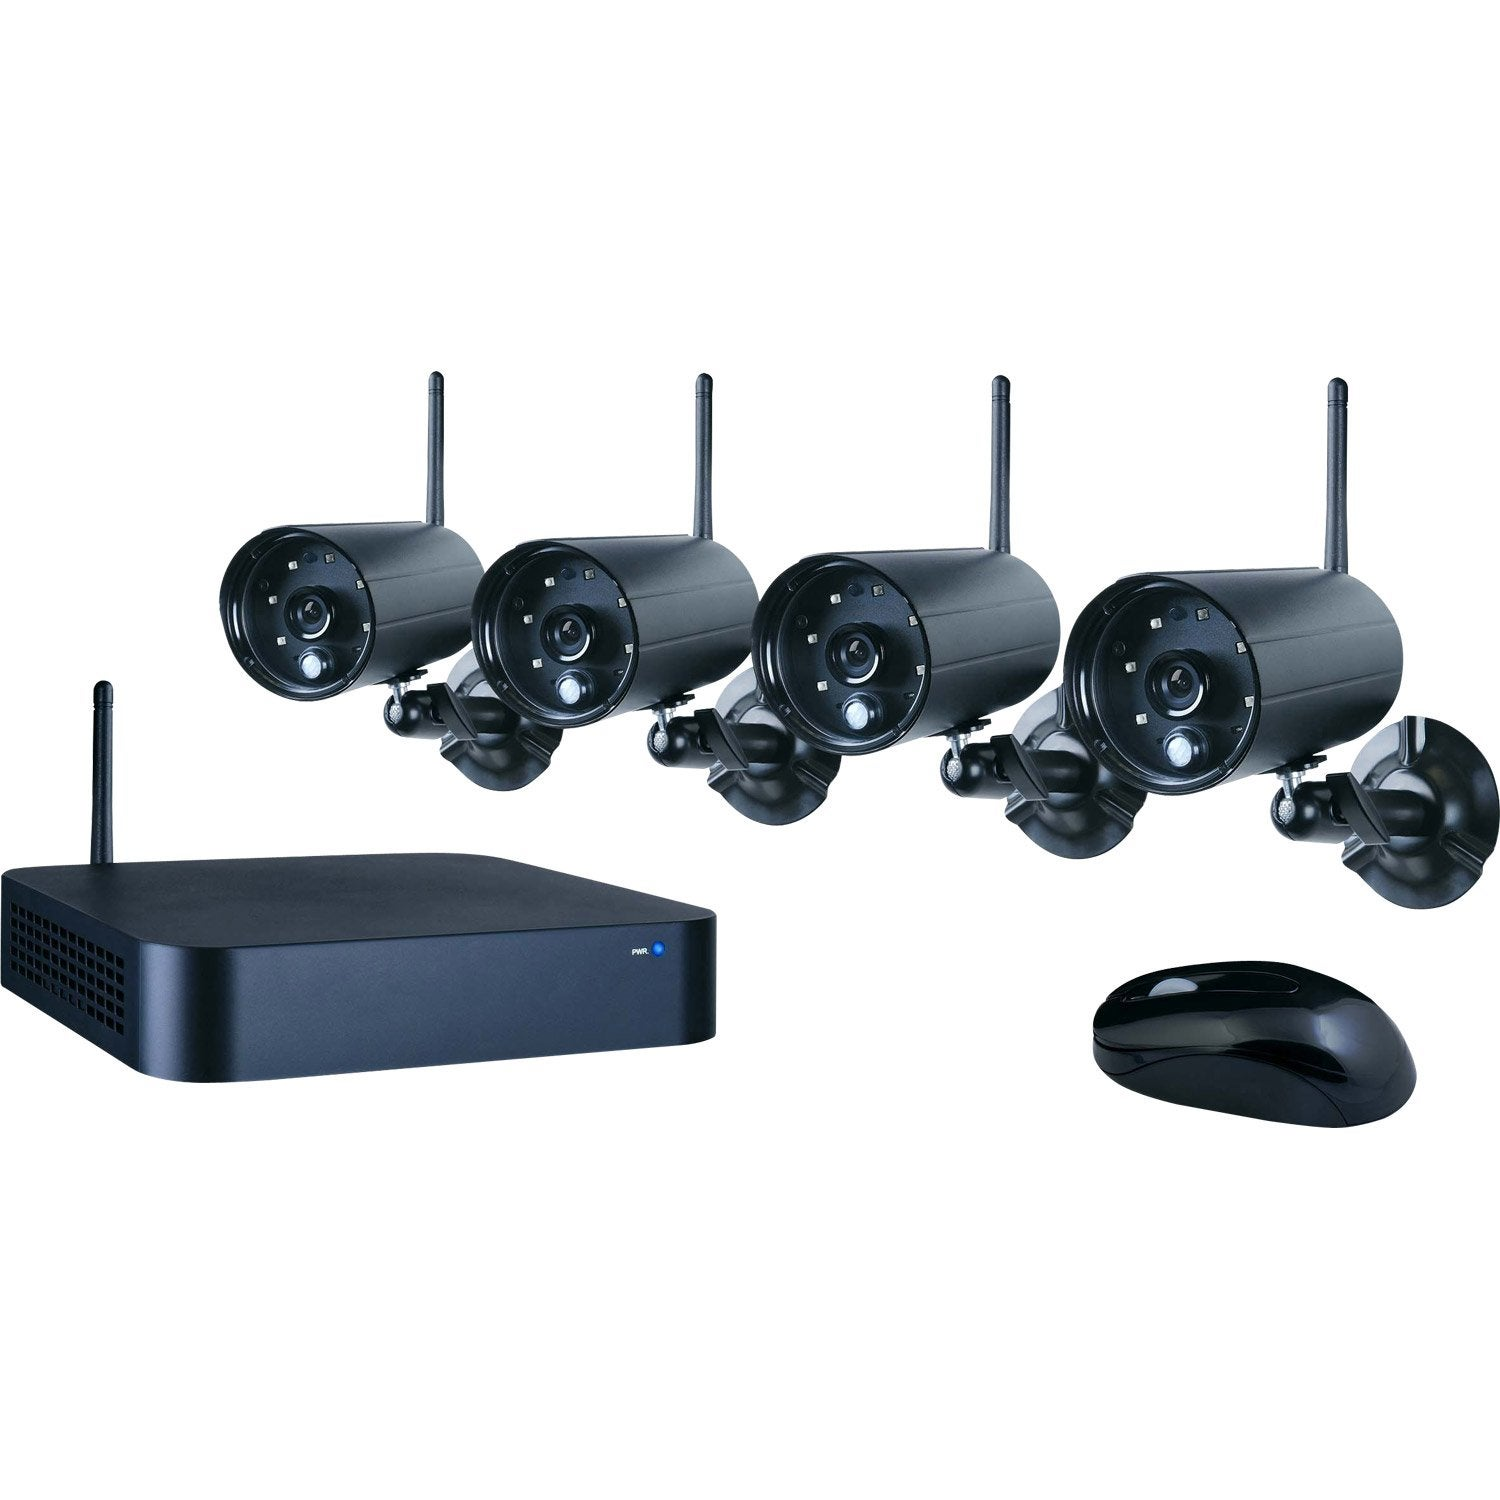 kit de vid osurveillance connect sans fil ext rieur. Black Bedroom Furniture Sets. Home Design Ideas